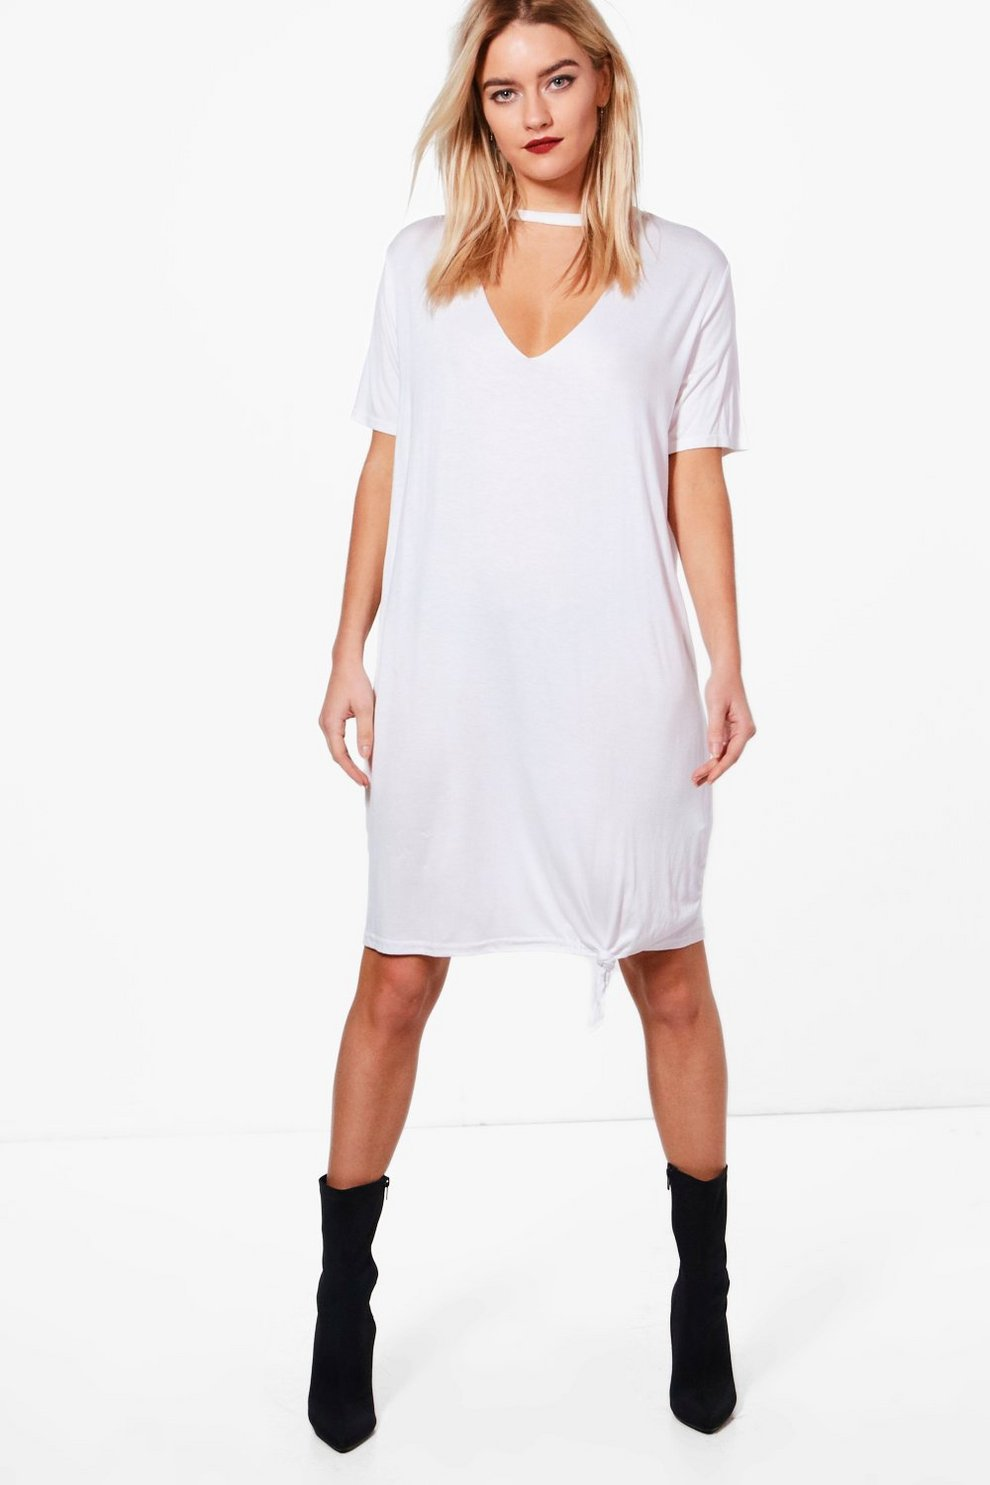 5ce8fedc8717c Womens White Katie Choker Oversized Knot Front T-Shirt Dress. Hover to zoom